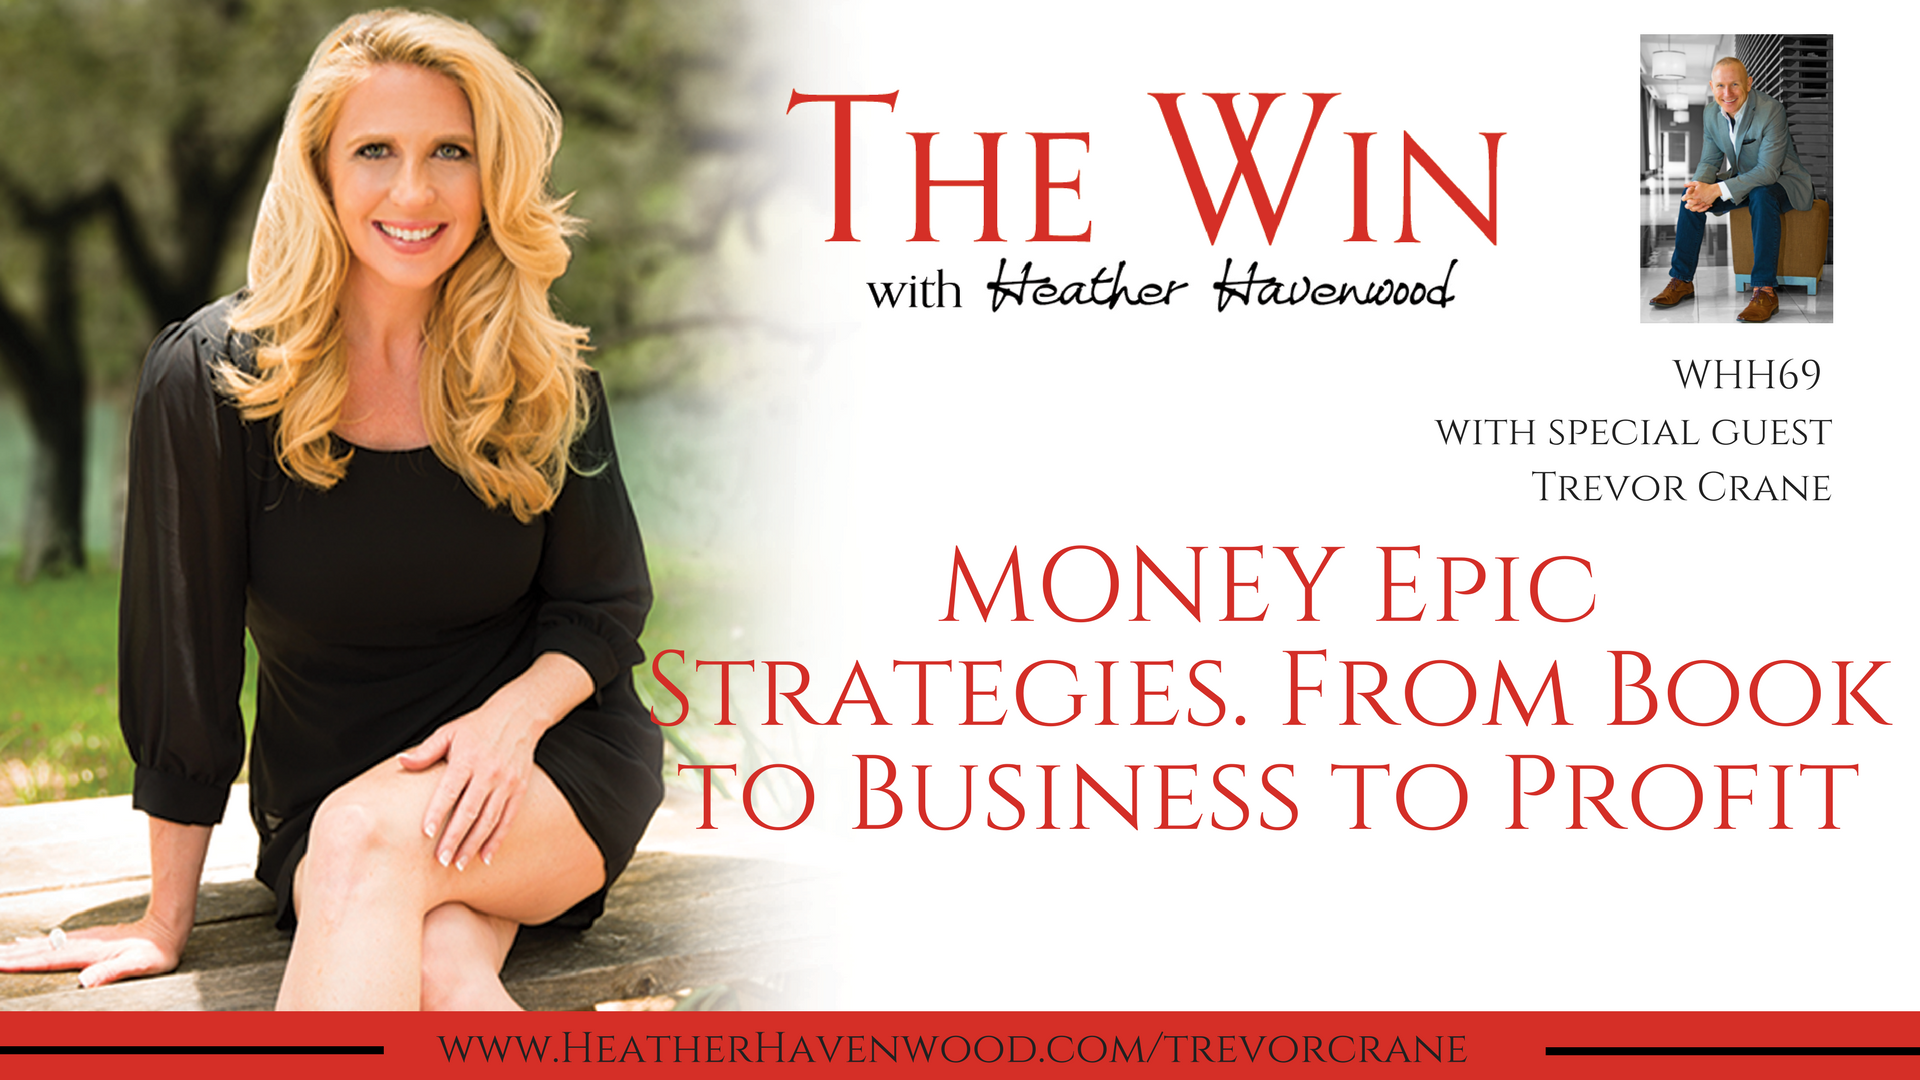 MONEY Epic Strategies. From Book to Business to Profit